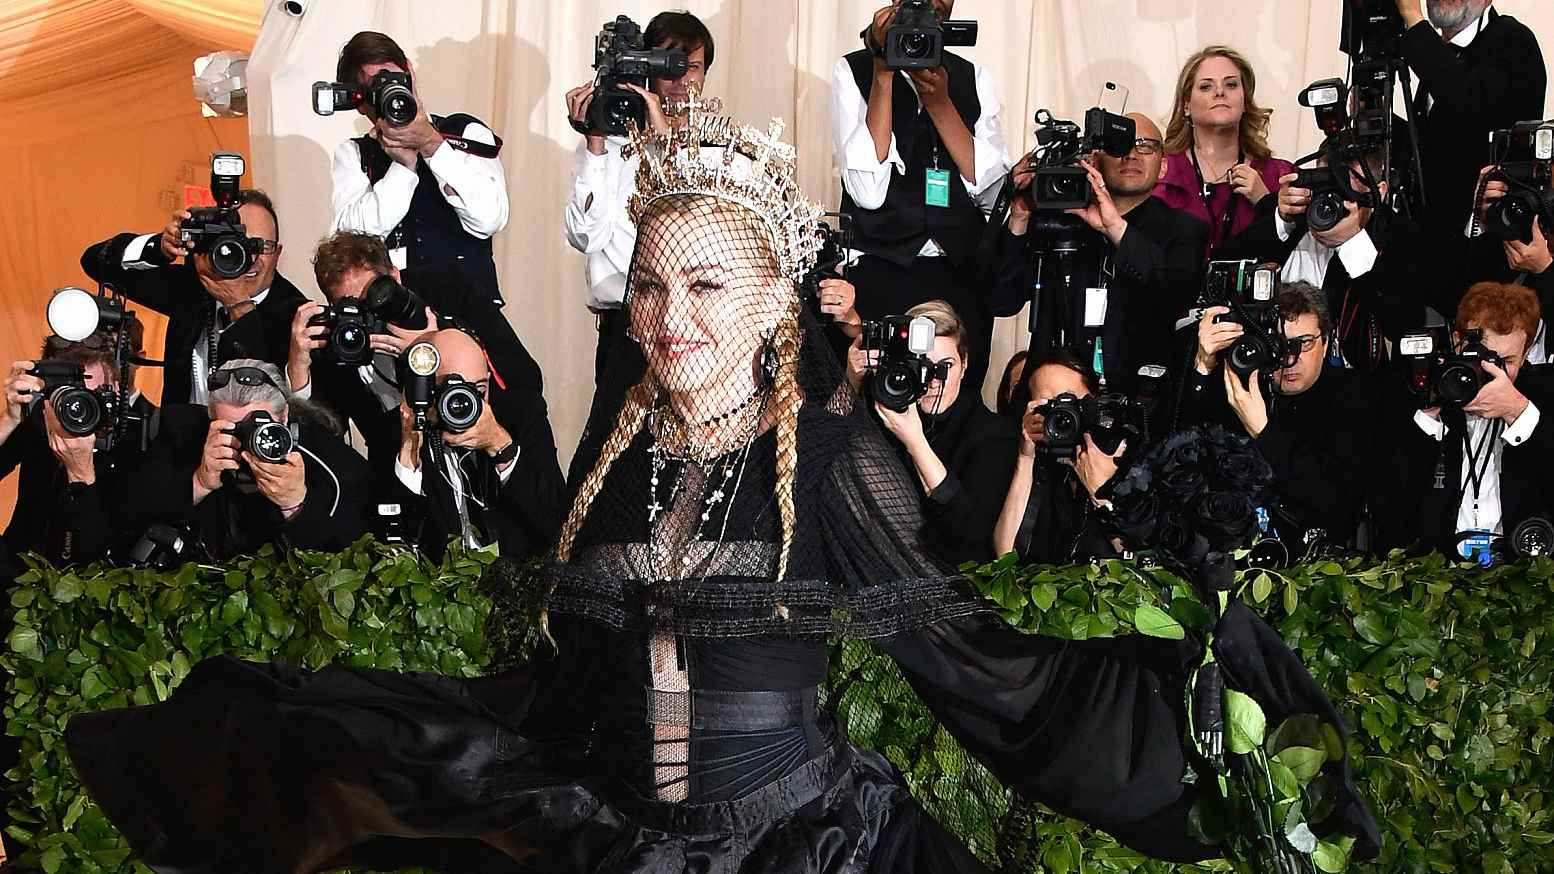 American pop icon Madonna claims she has COVID-19 antibodies